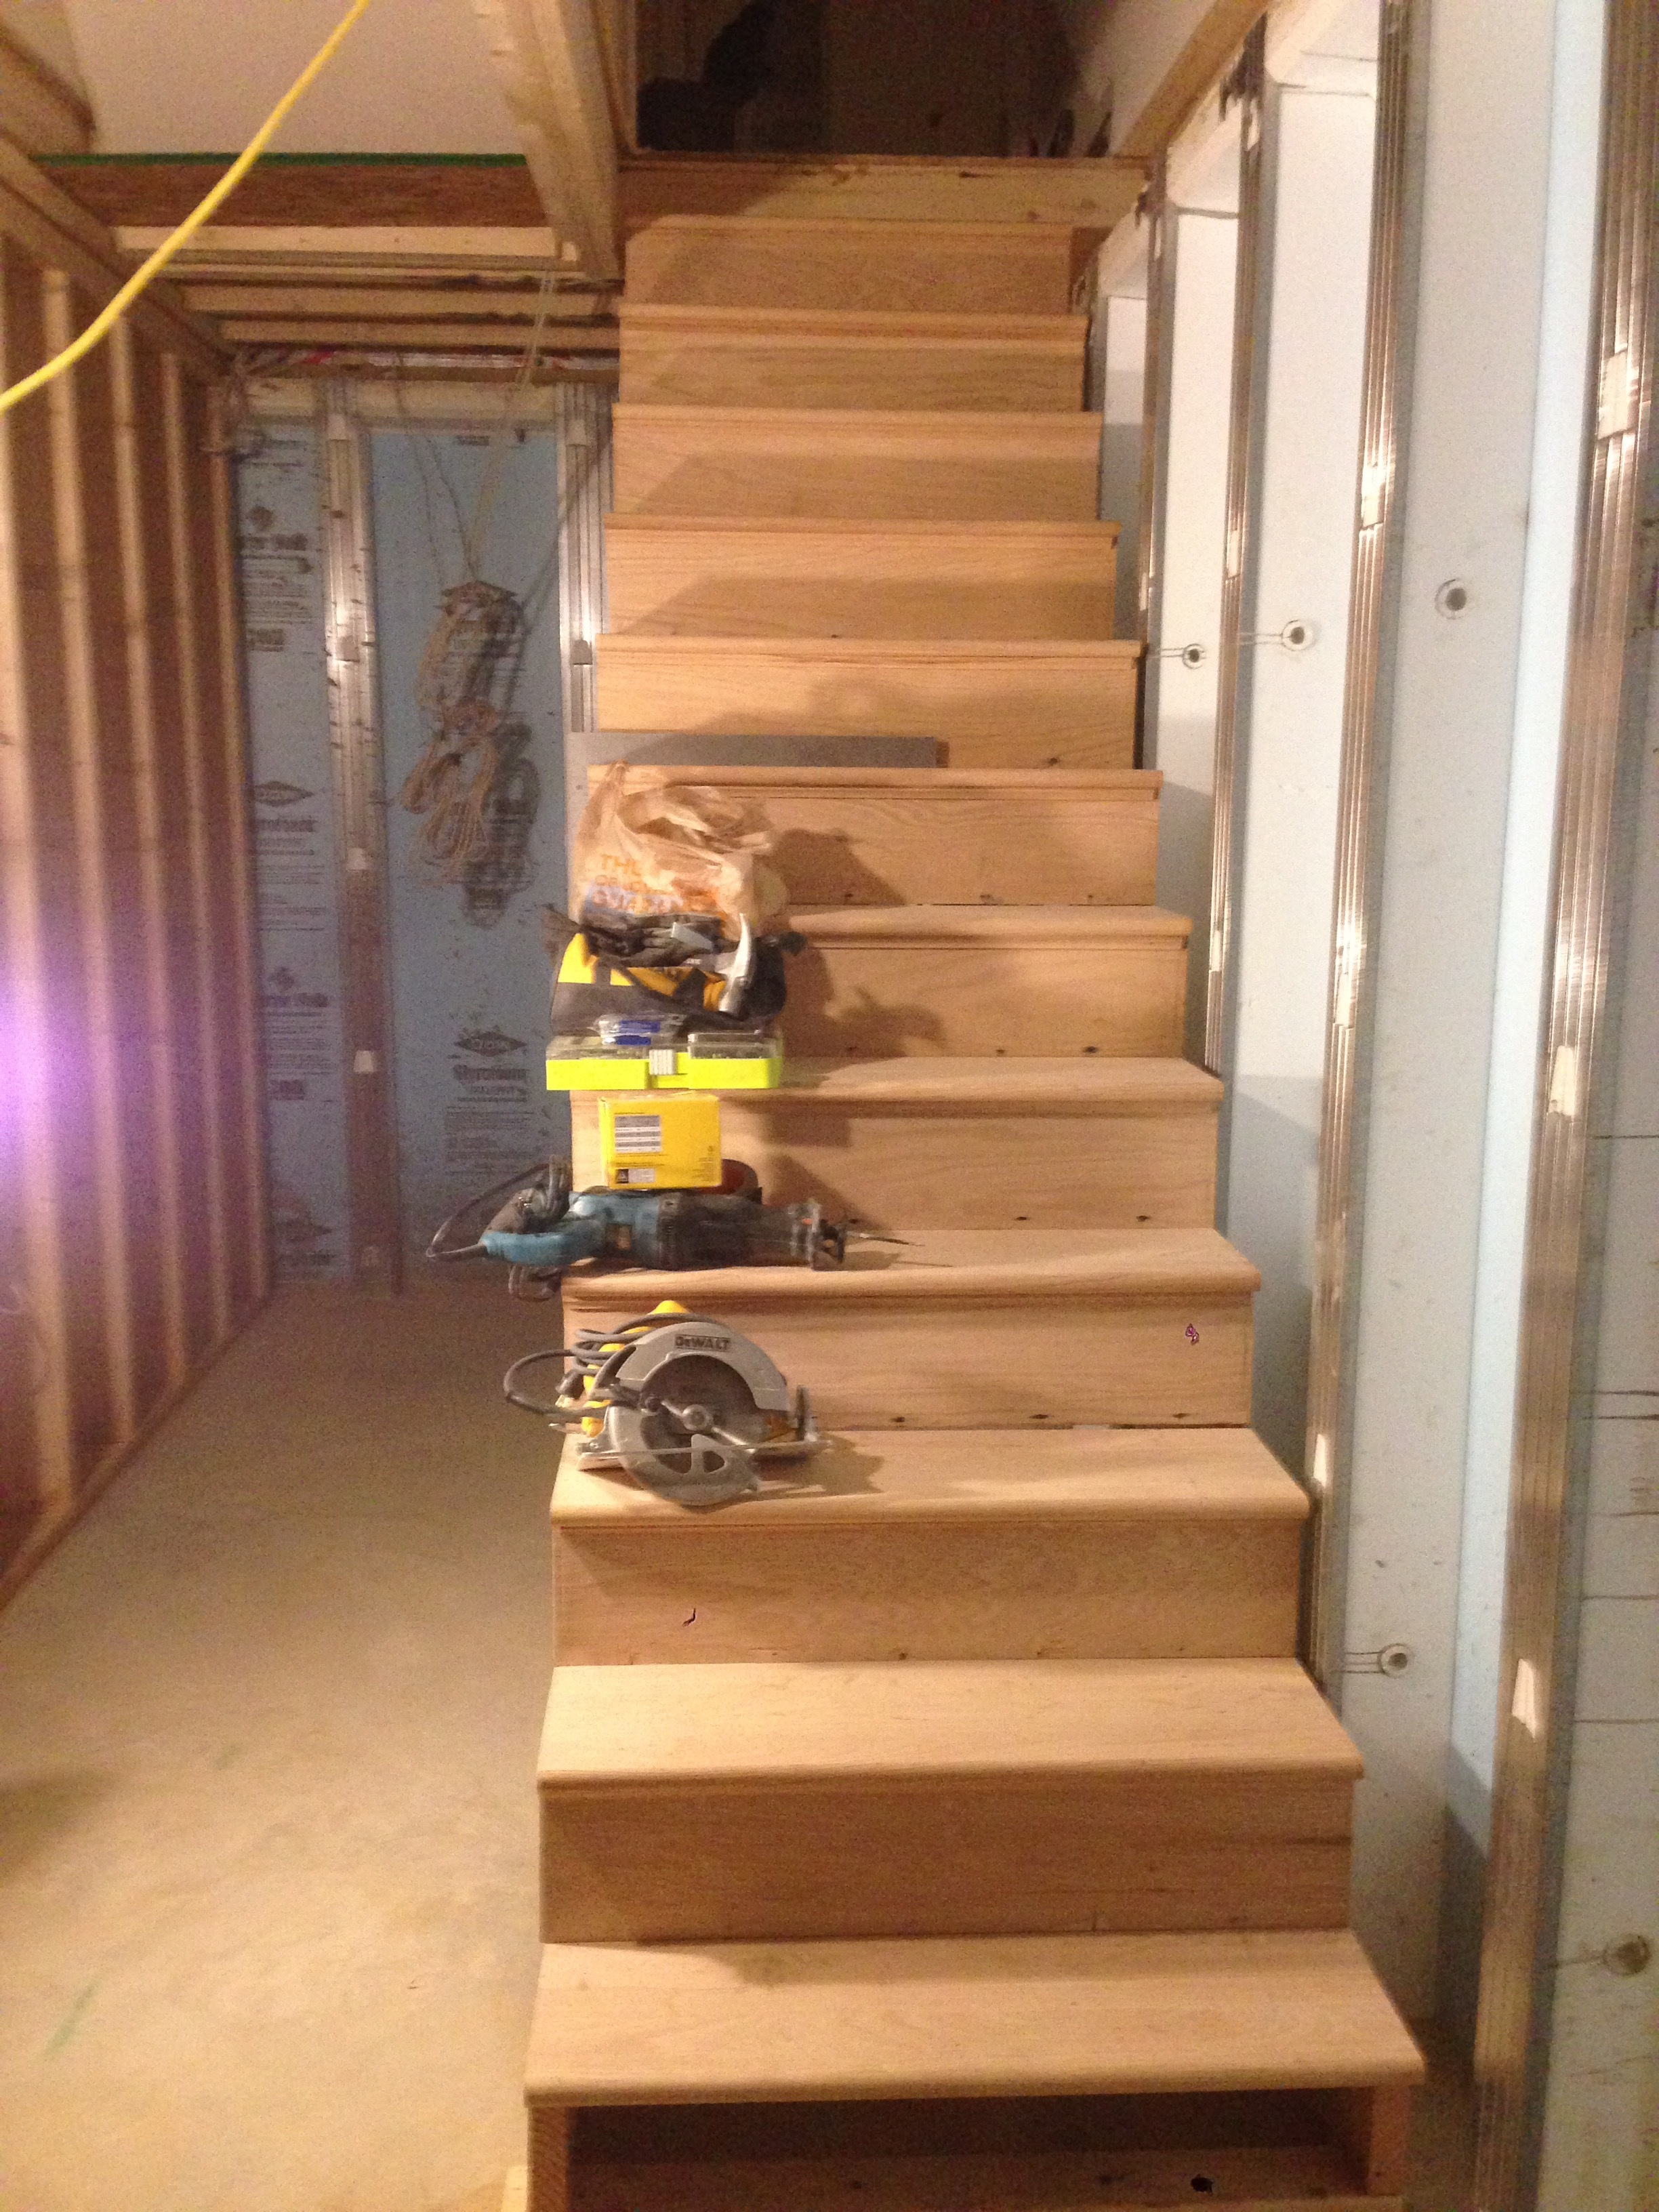 23:10 Stairs complete. More to do but there are finally stairs to the basement.